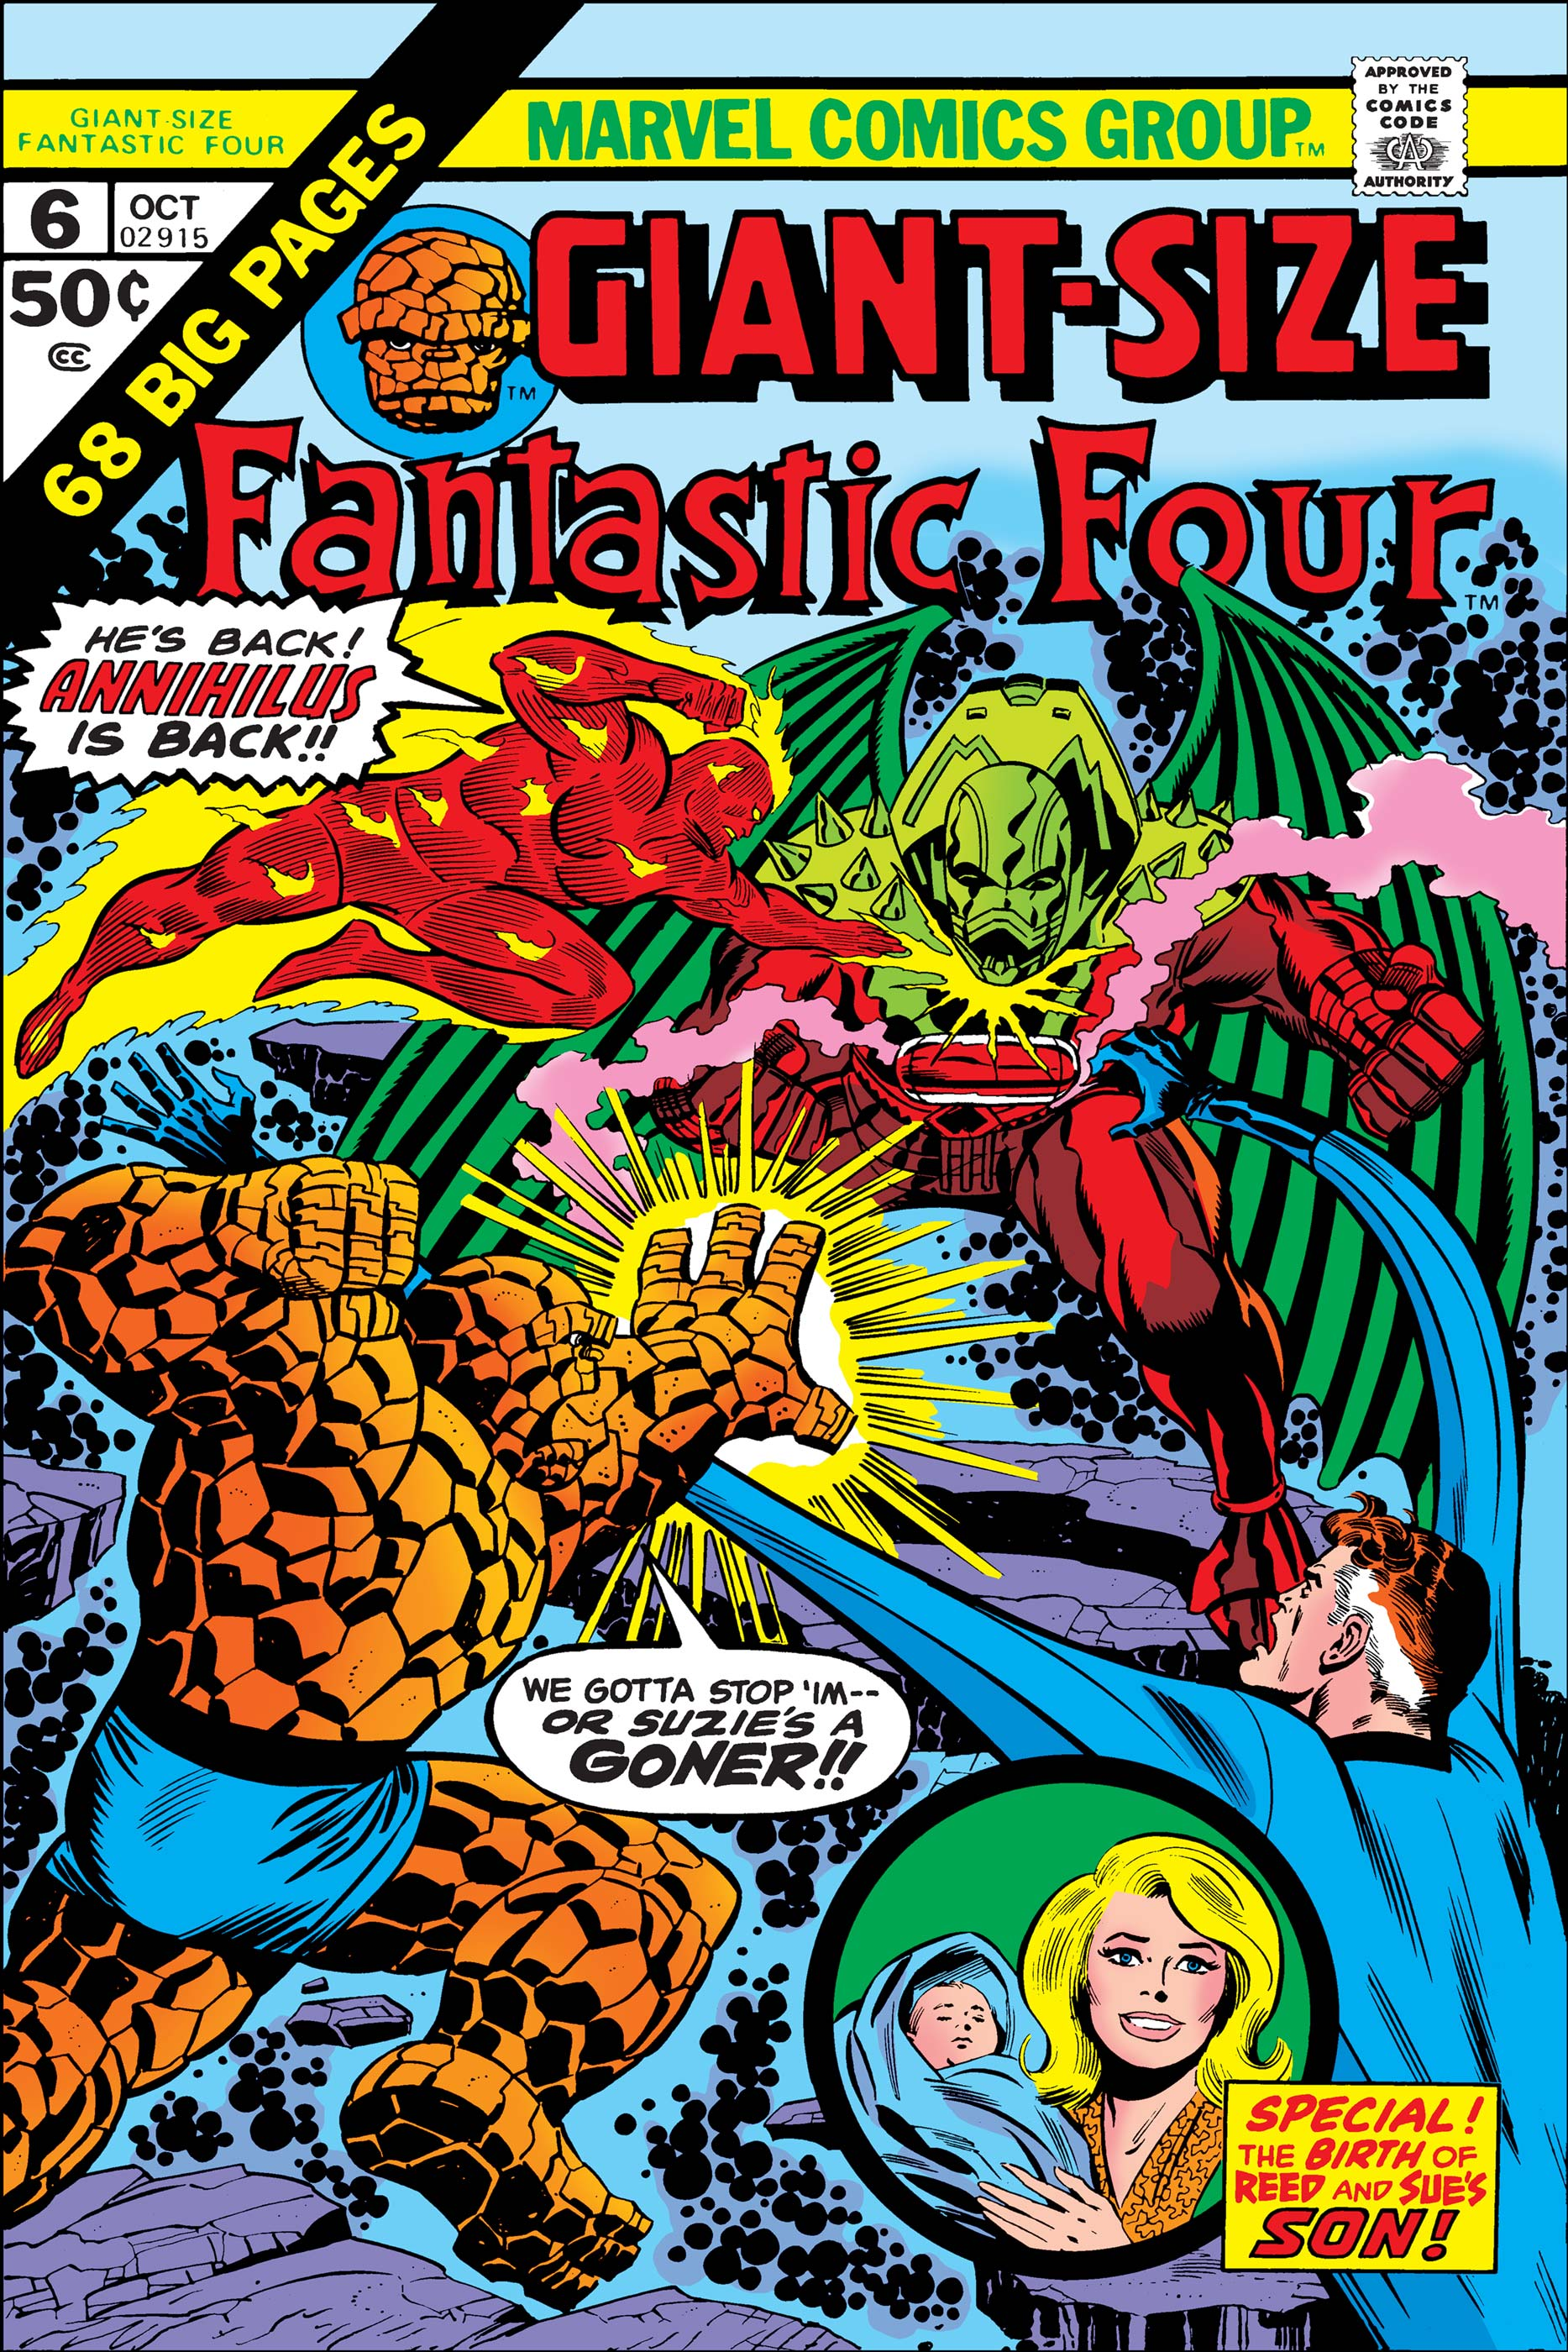 Giant-Size Fantastic Four (1974) #6